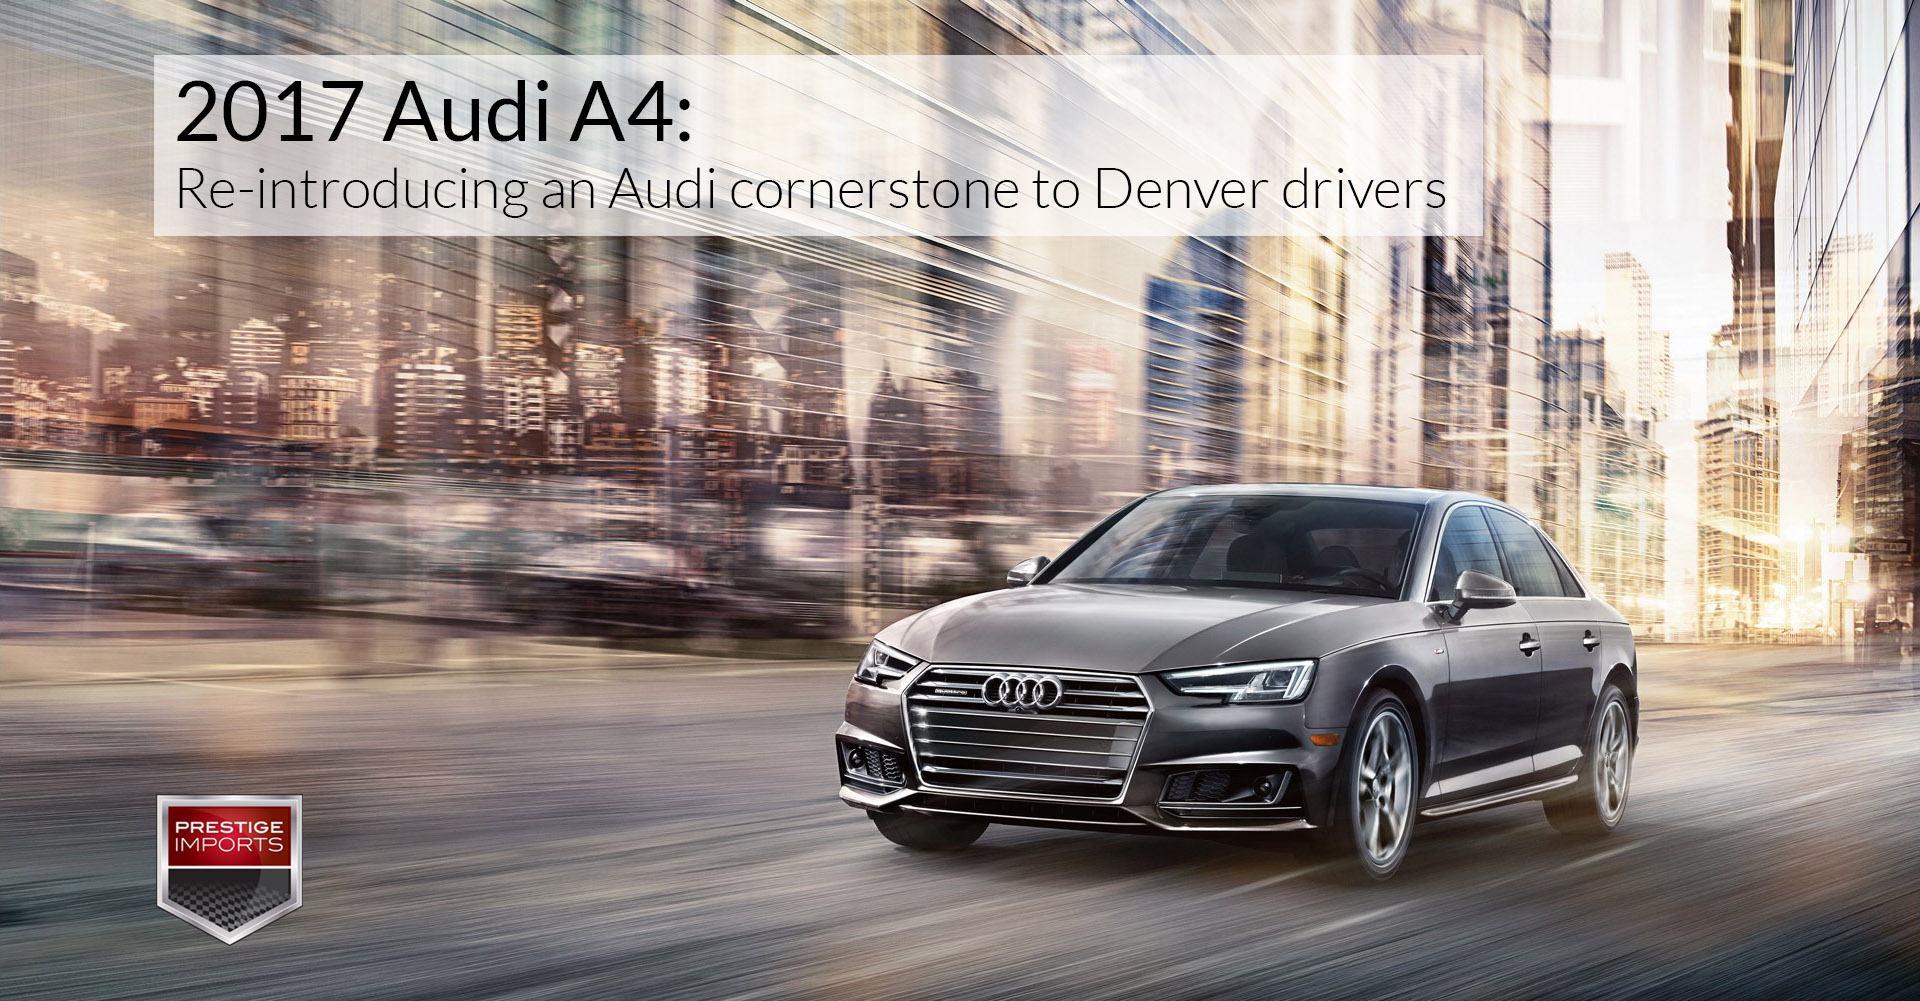 Audi A Reintroducing An Audi Cornerstone - Anaudi